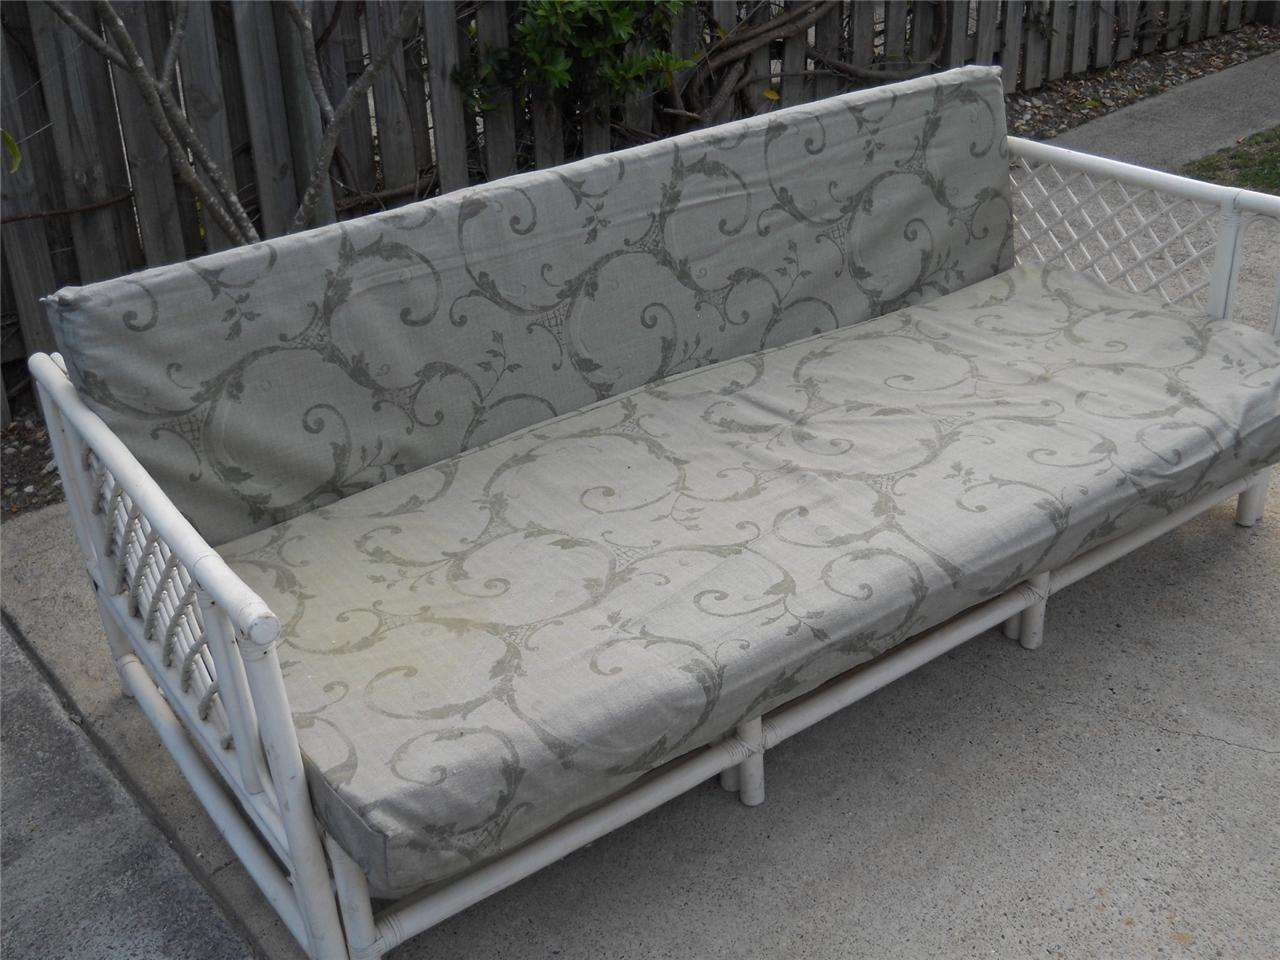 Vintage cane wicker daybed divan shabby chic outdoor for Divan daybed